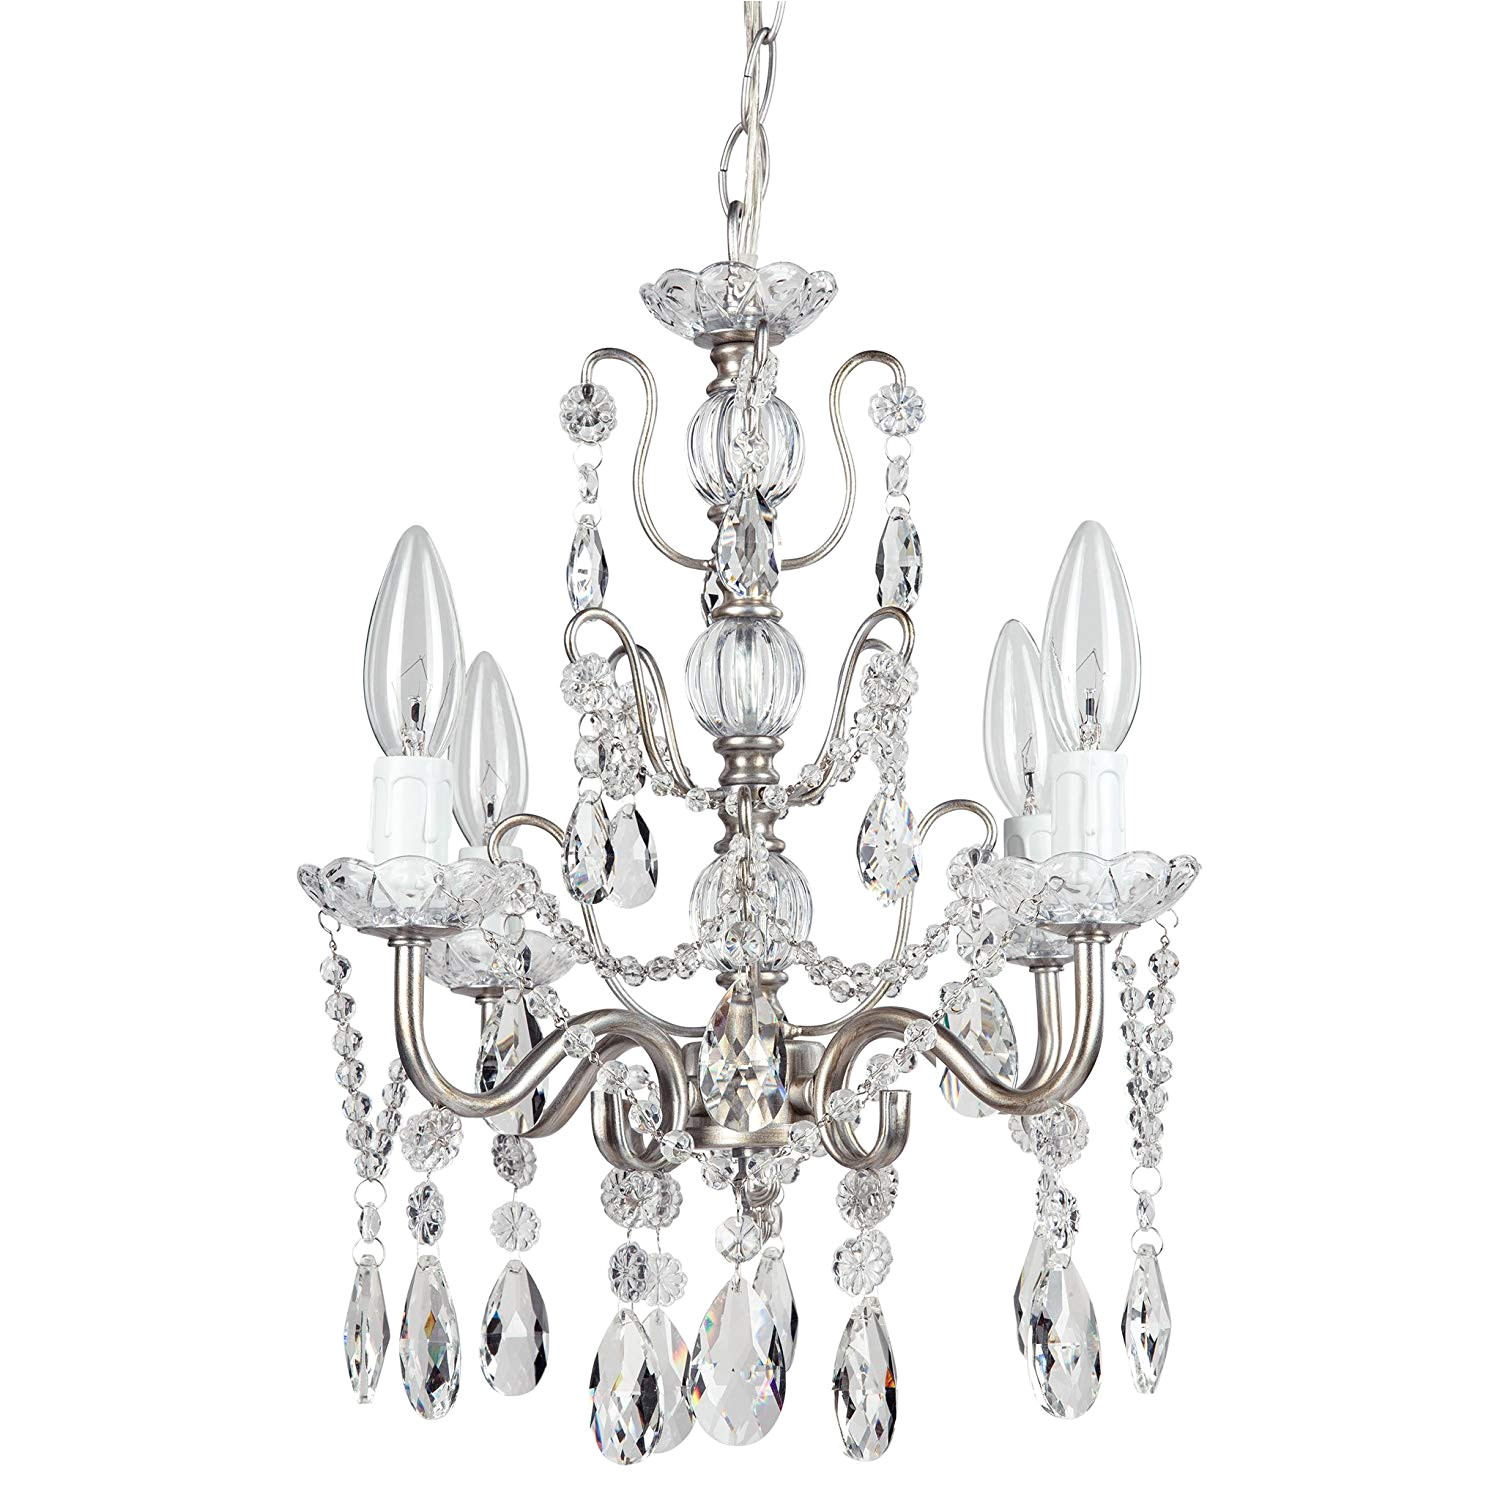 madeleine vintage silver crystal chandelier mini swag plug in glass pendant 4 light wrought iron ceiling lighting fixture lamp amazon com